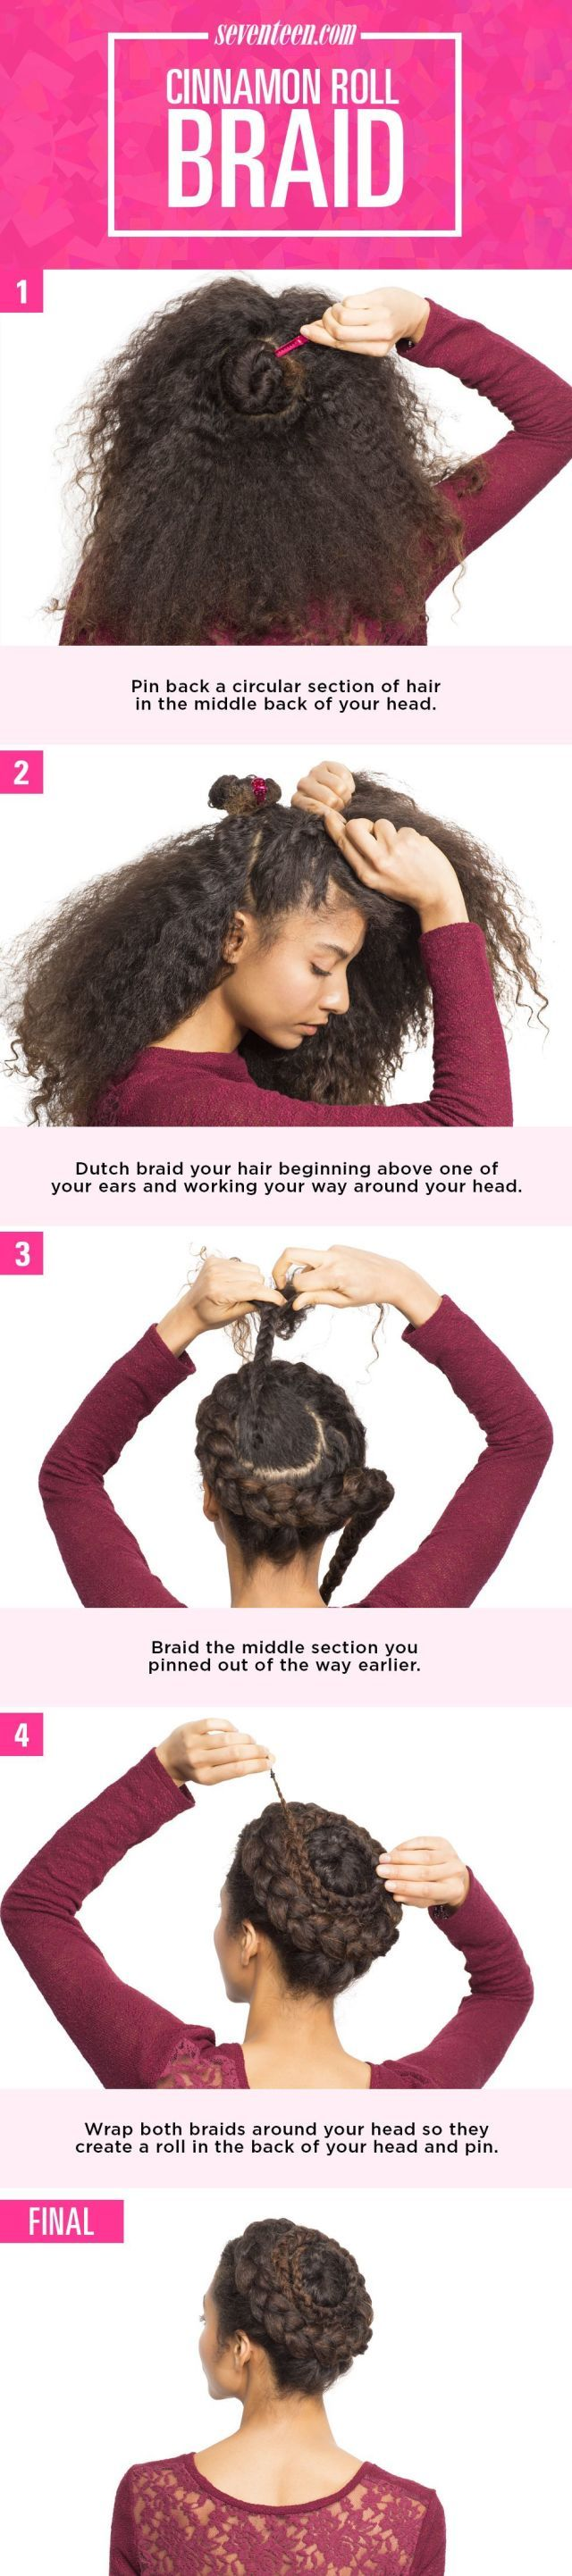 I need to practice this! Too cute!  The+Prettiest+New+Braided+Hairstyles+for+2016 - Seventeen.com